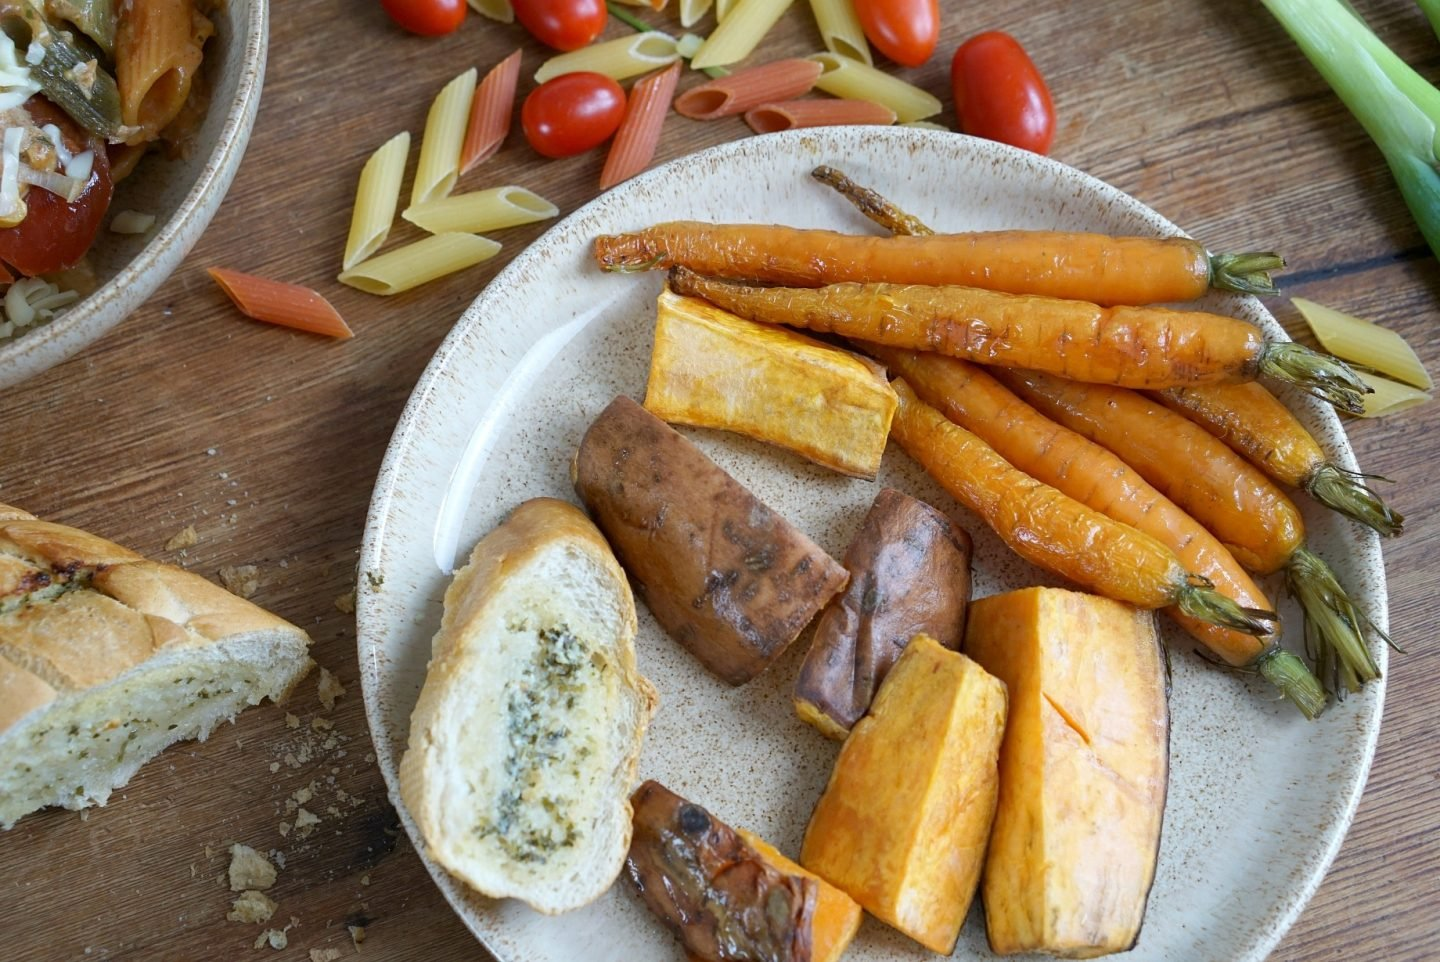 Roasted Carrots and sweet potatoe wedges www.extraordinarychaos.com